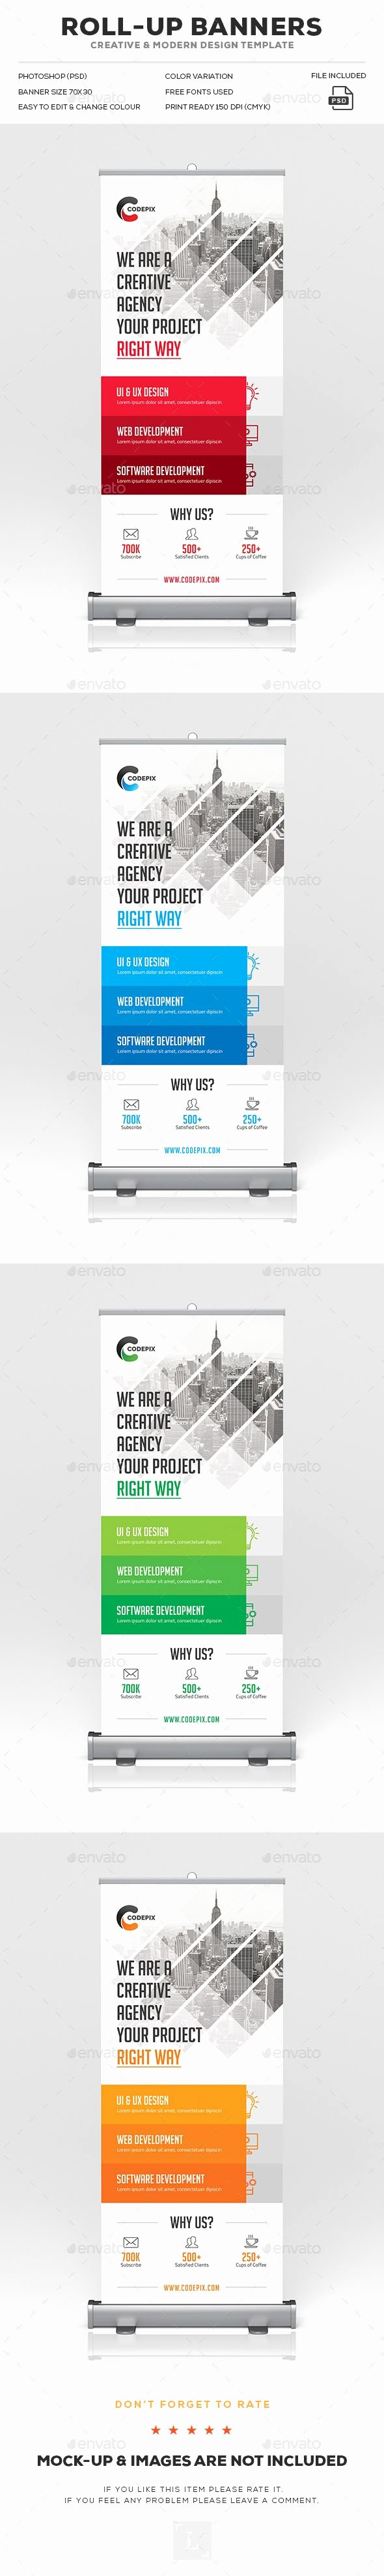 Roll Up Banner Template Lovely Roll Up Banner